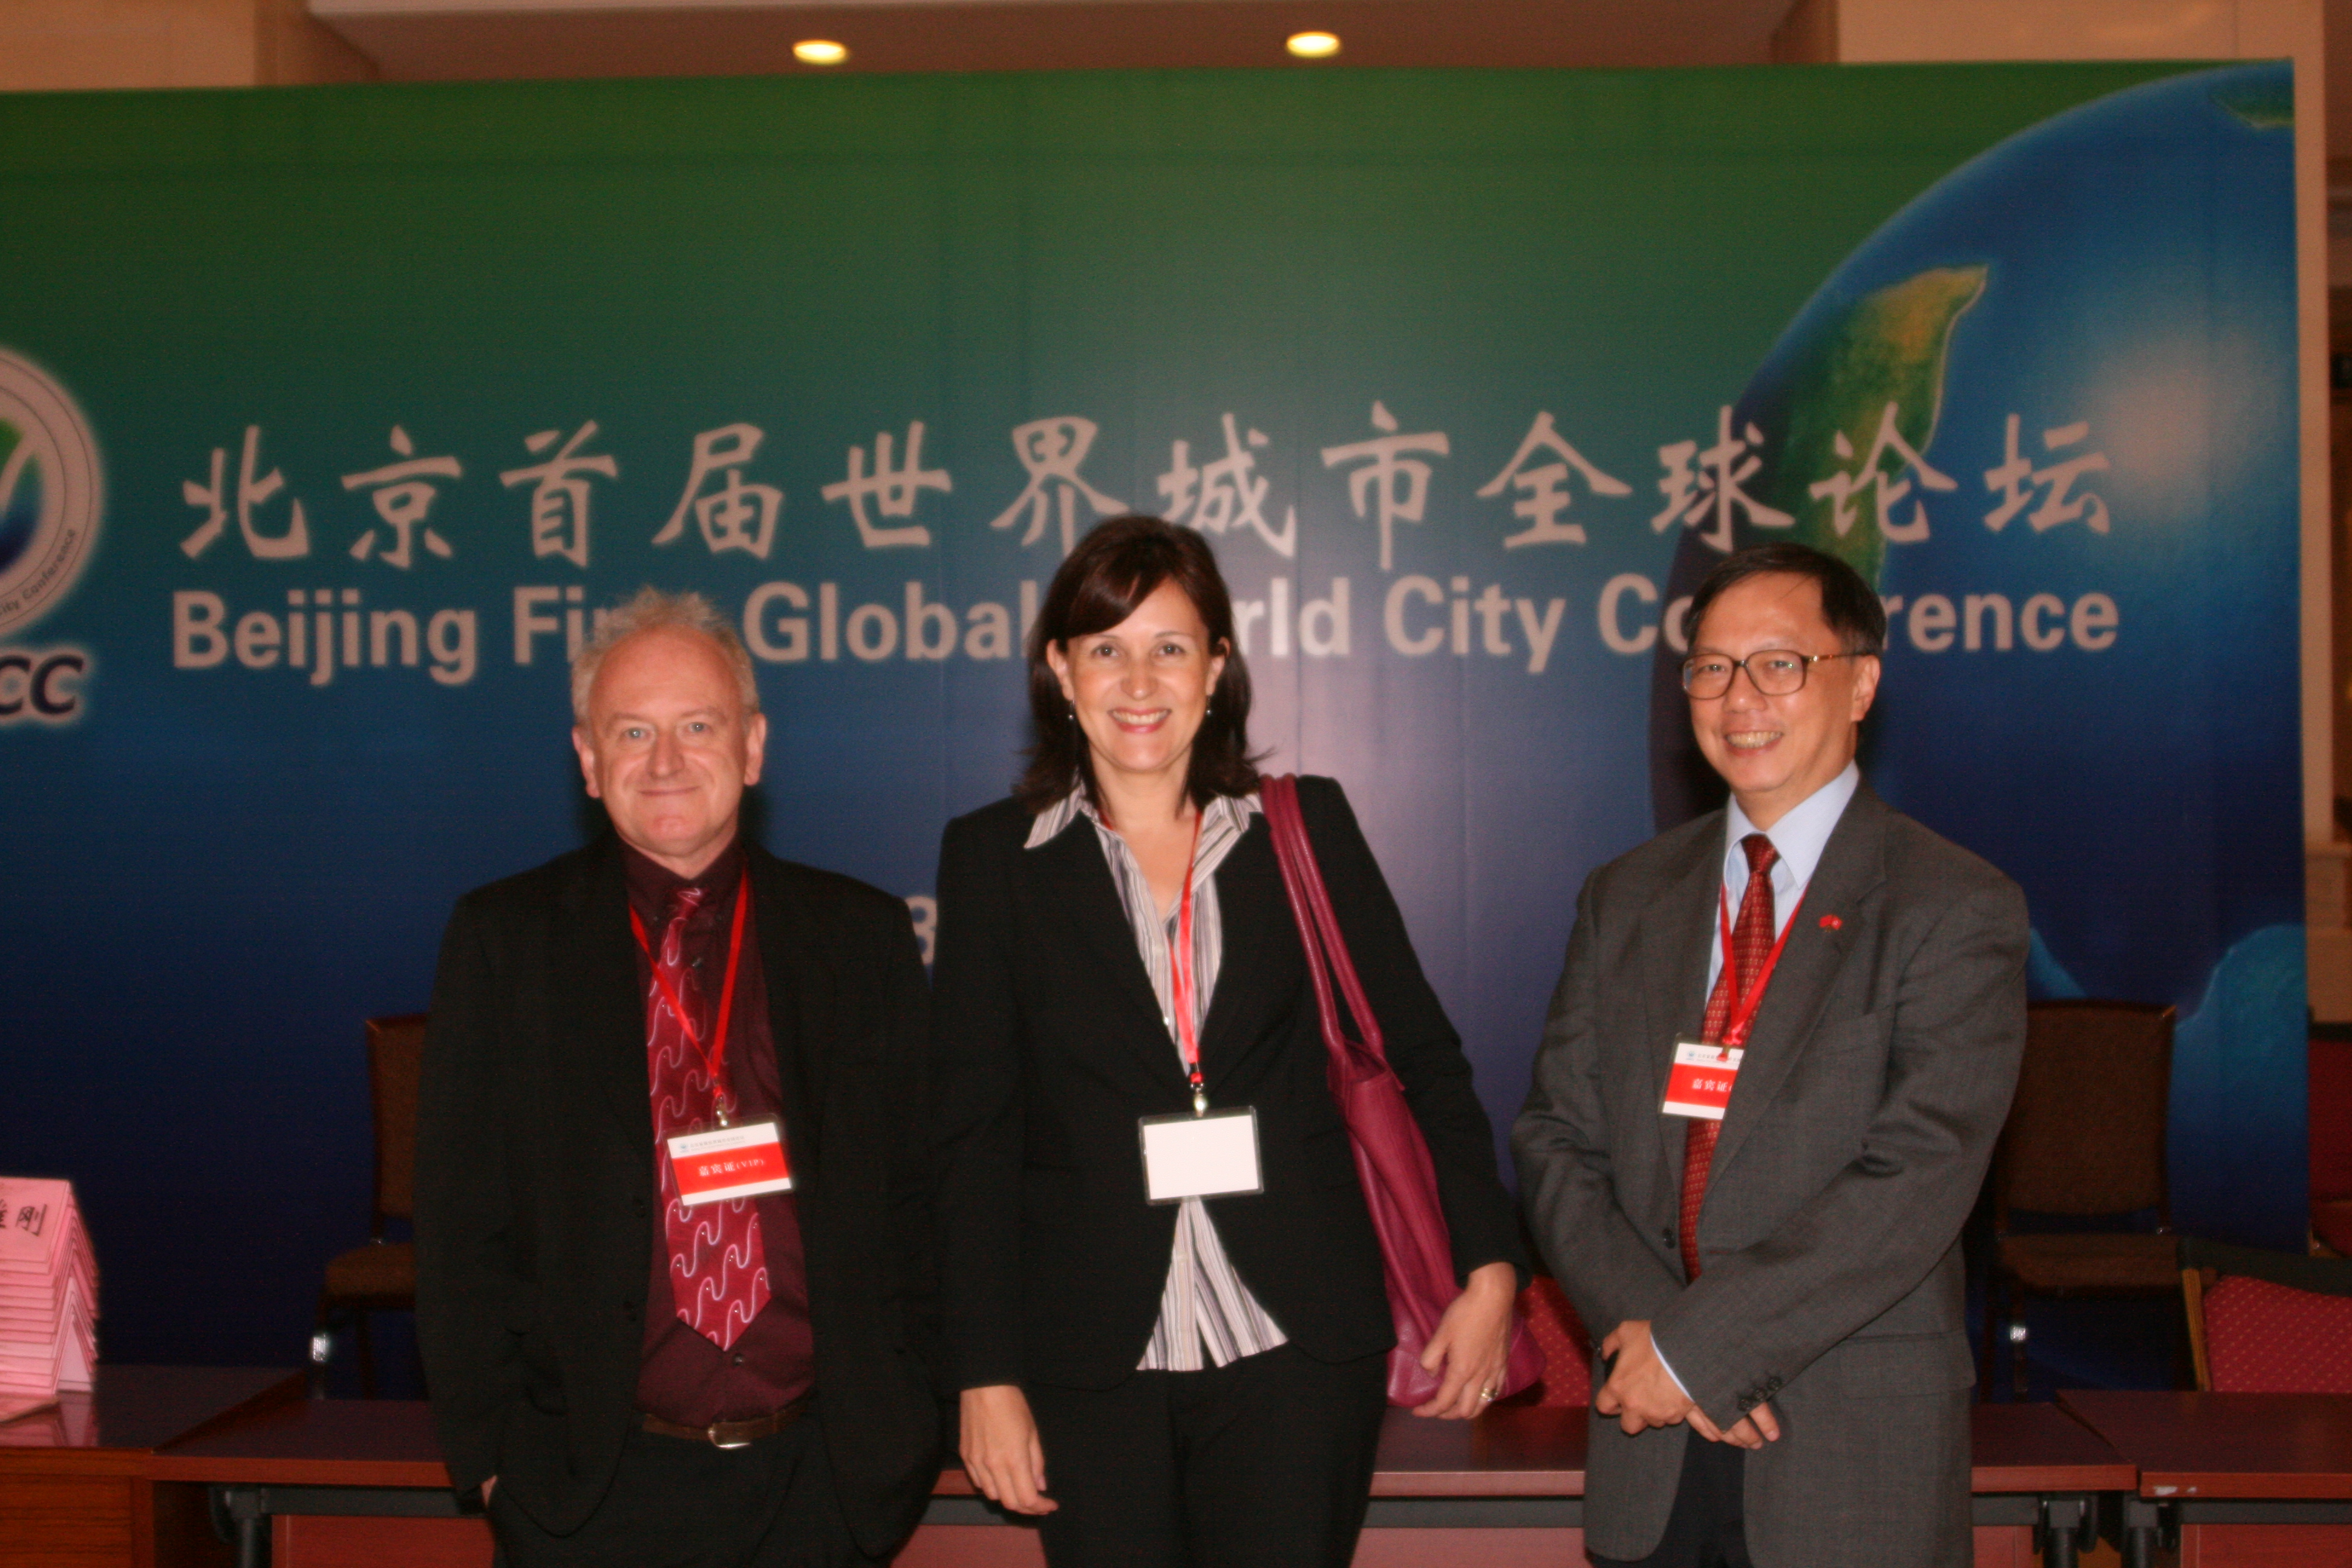 Beijing First Global World City Conference